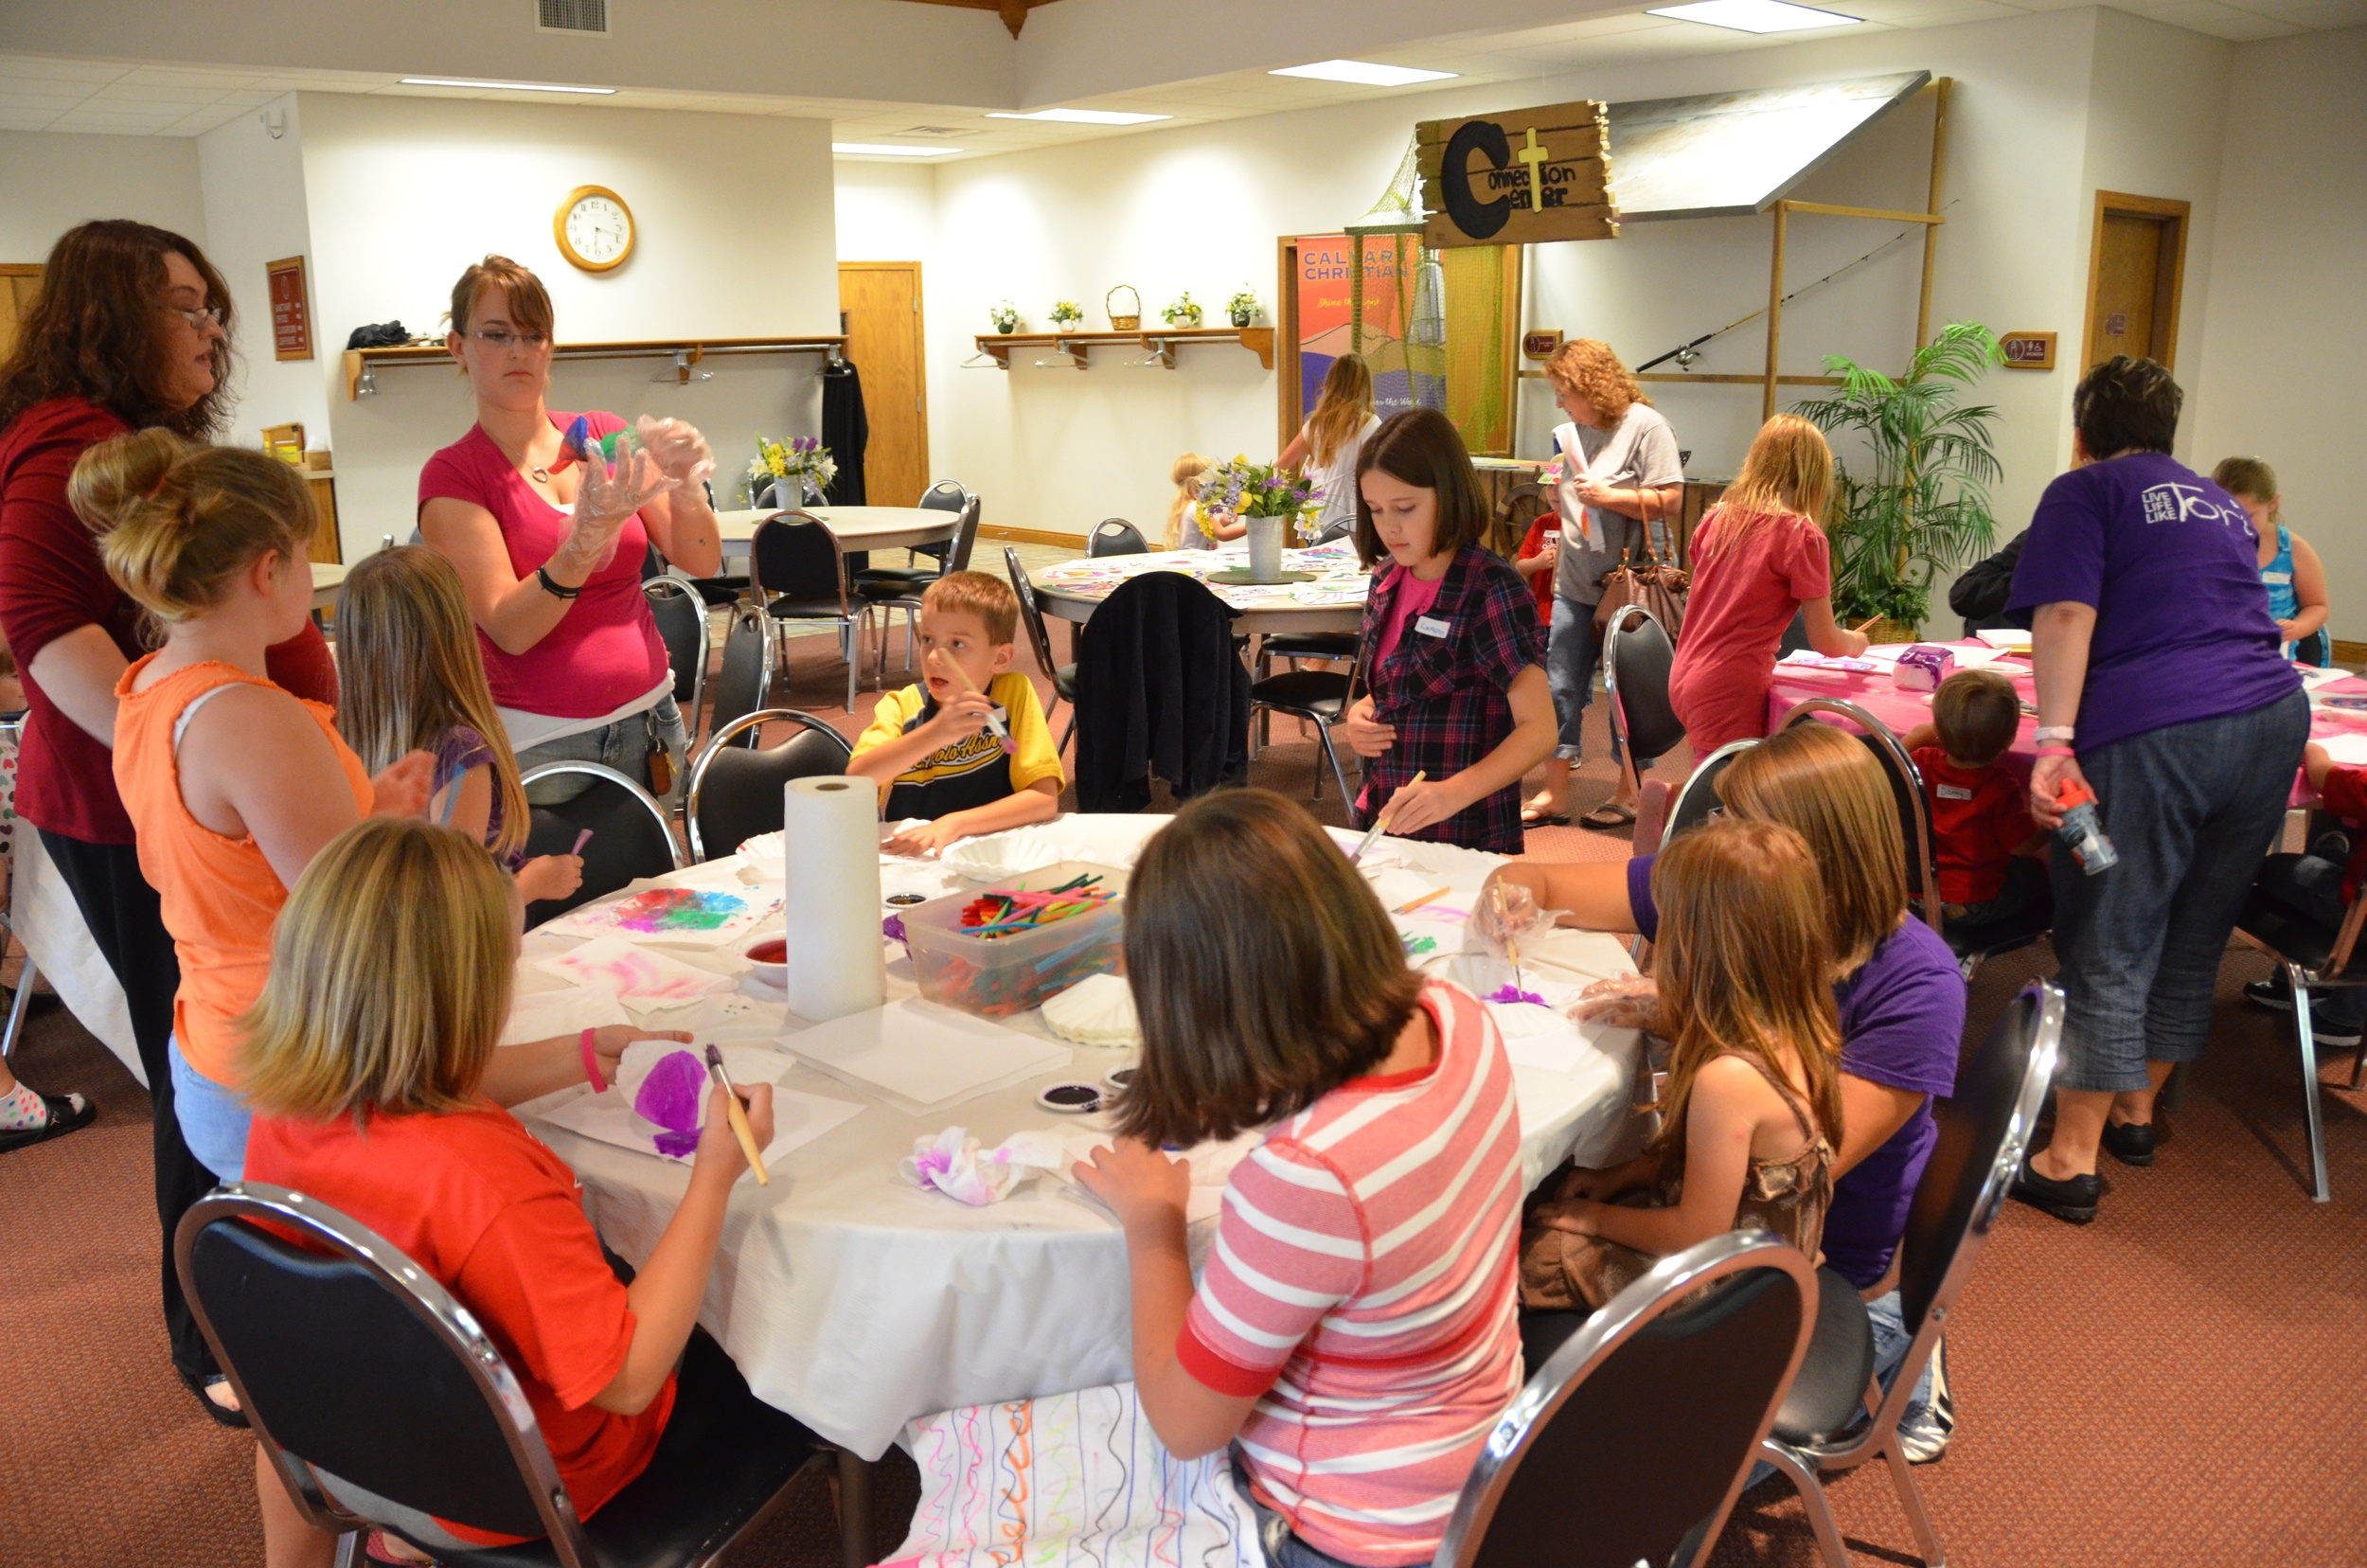 KIds ARt Church 9 12 2011   95243.jpg